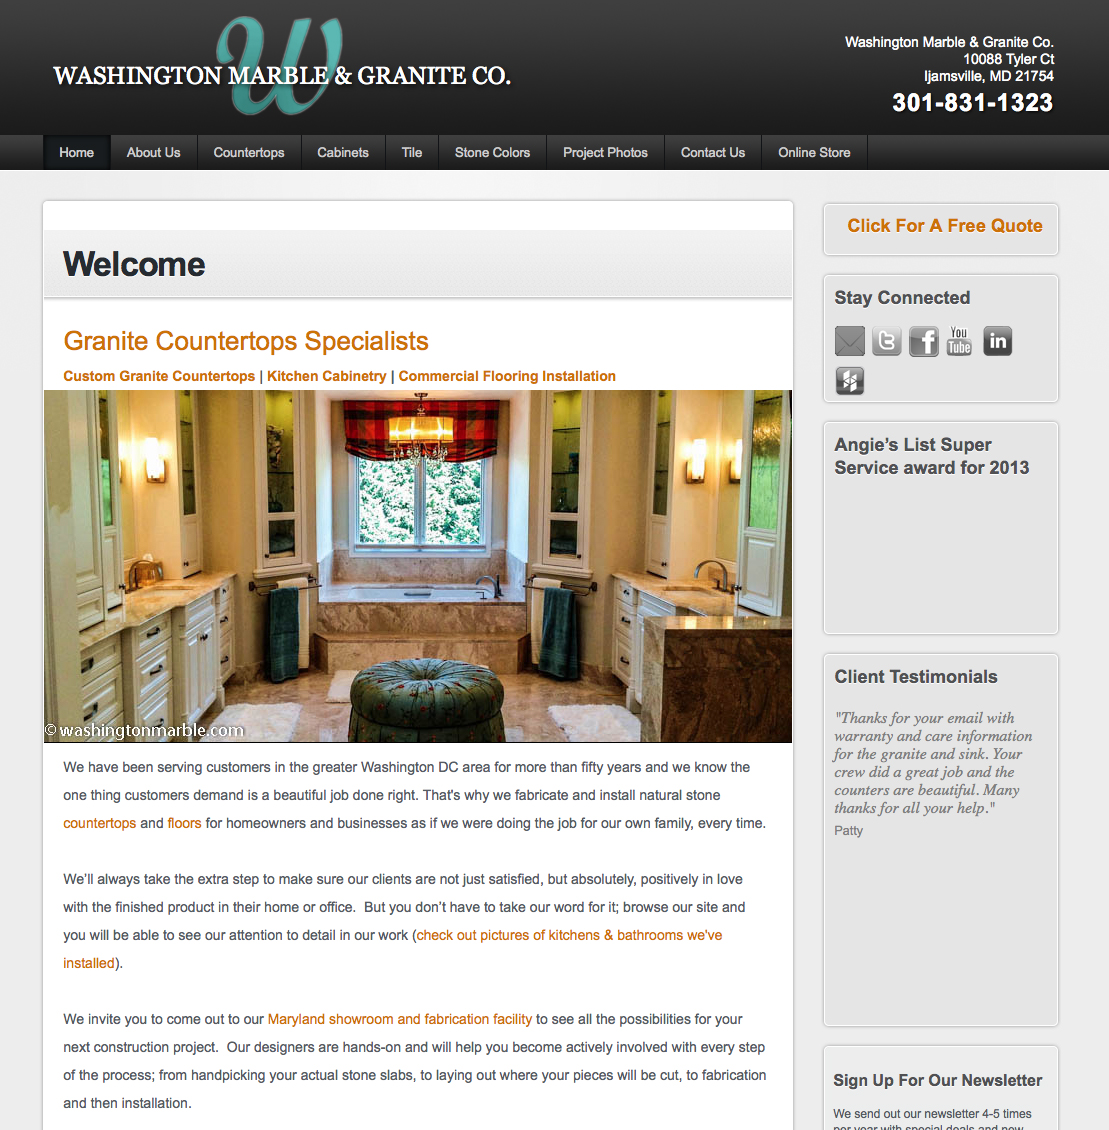 washingtonmarble.com